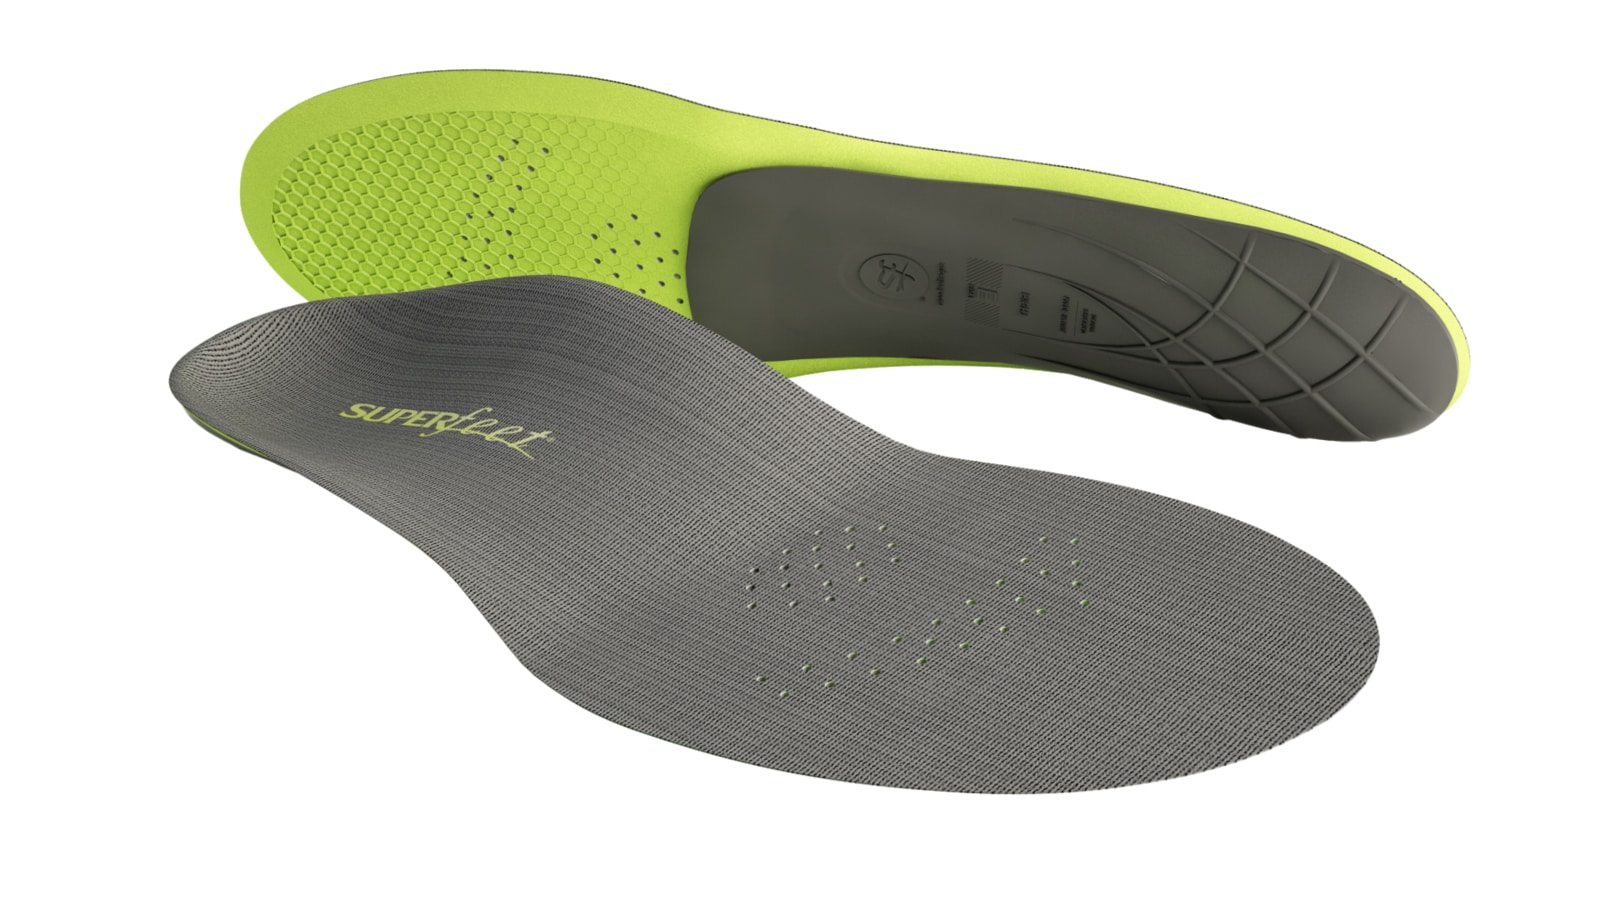 insoles for flat feet - Superfeet CARBON Full-Length Insoles